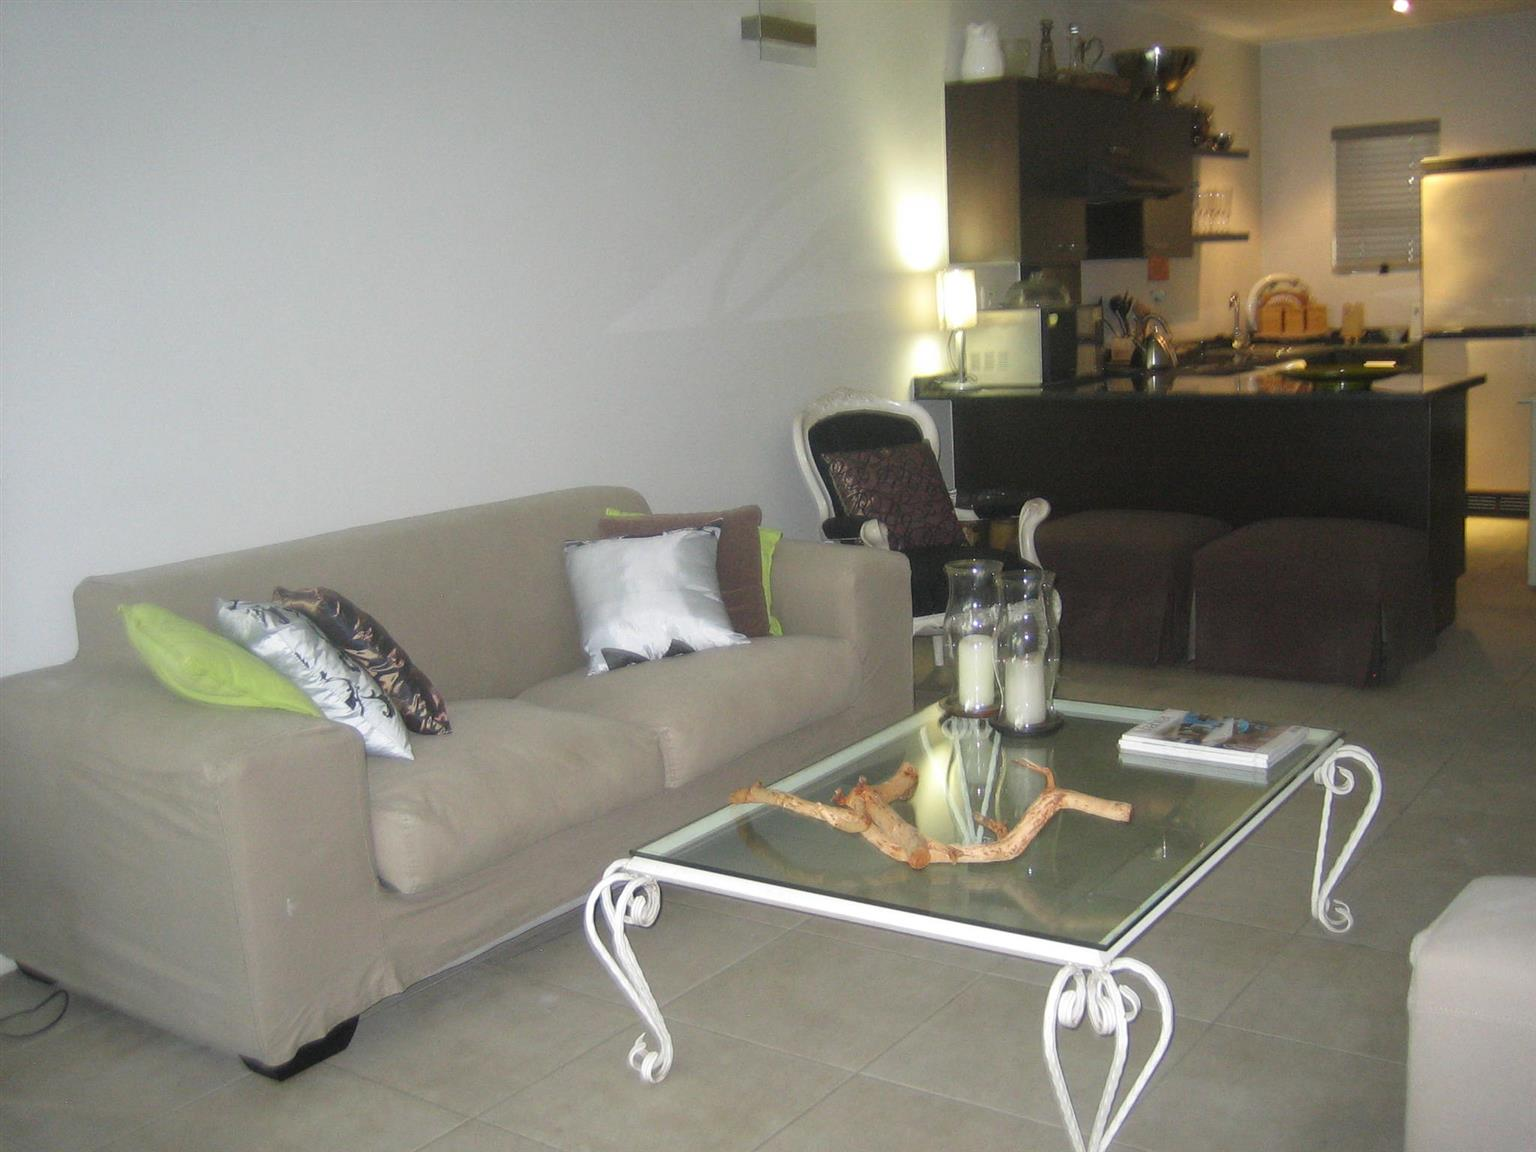 2 x Coricraft Couches for Sale  R3000 for both (neg) - excellent condition